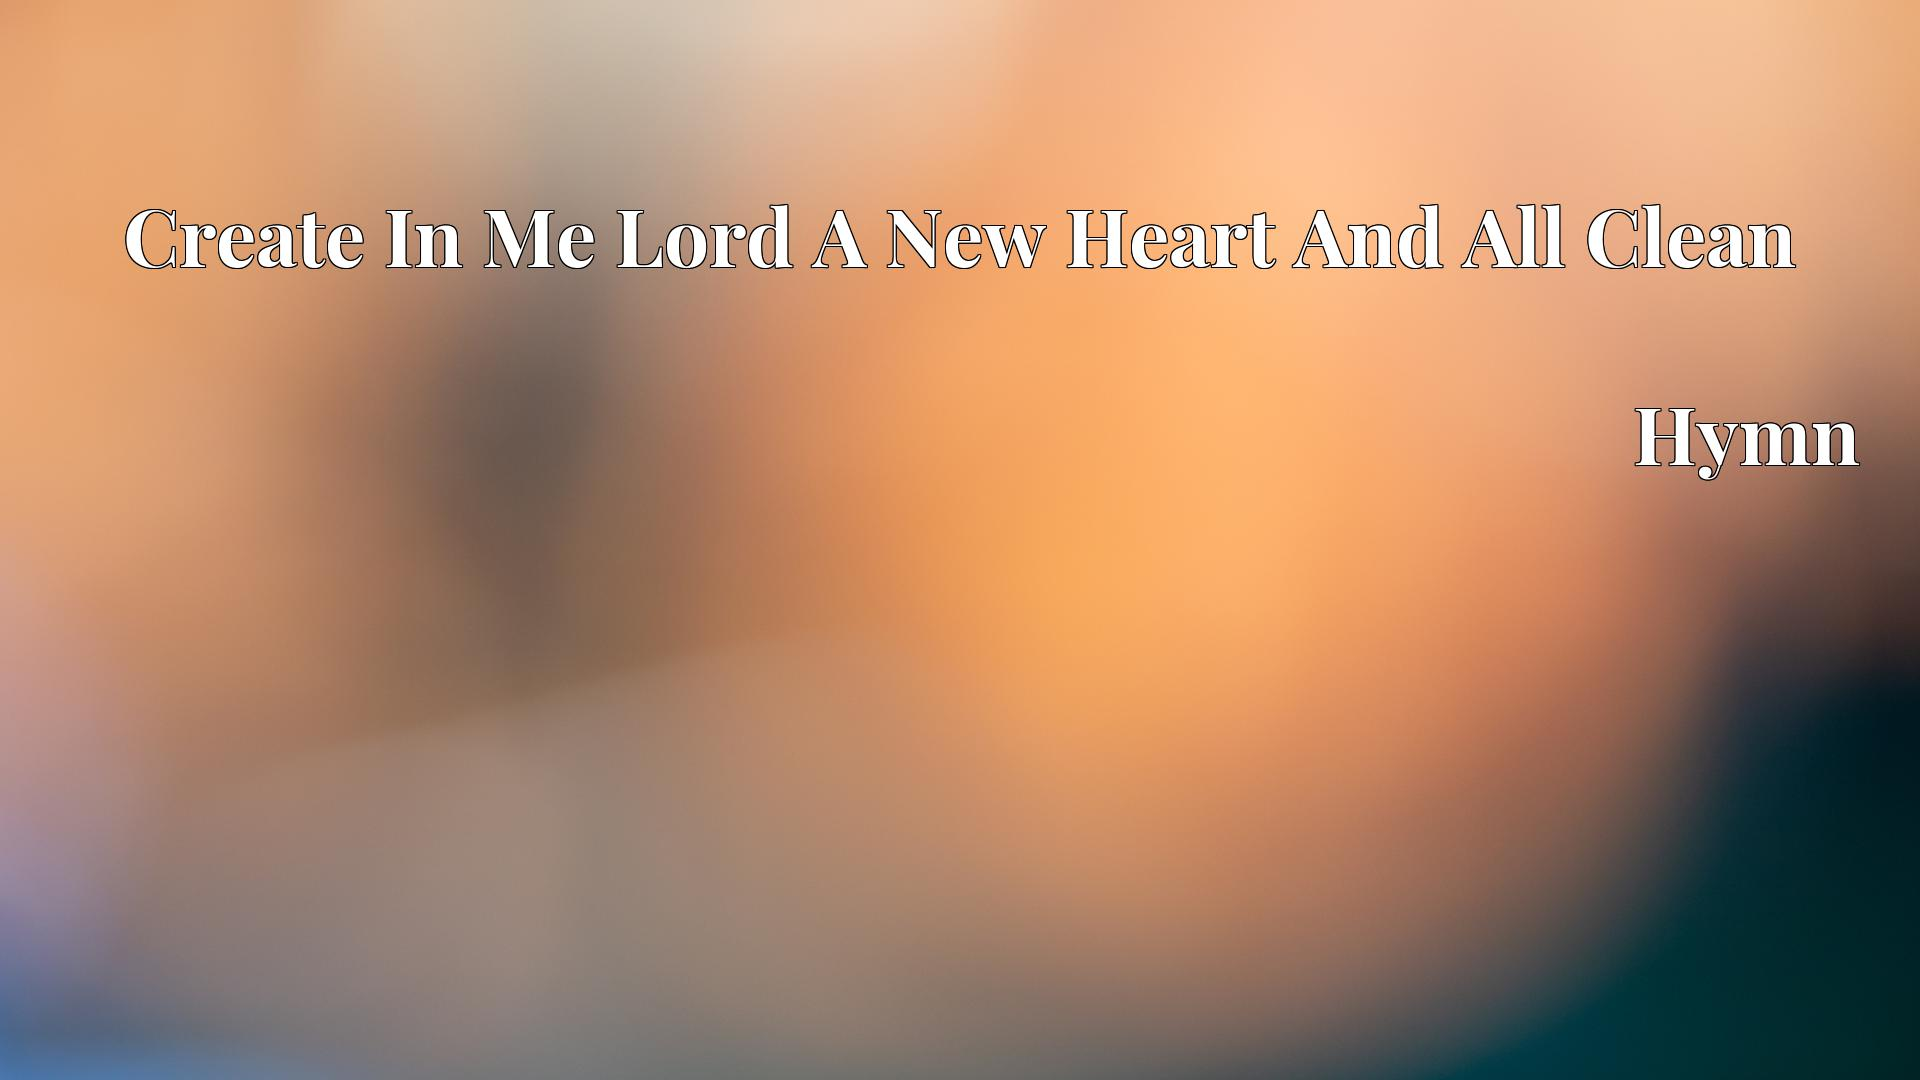 Create In Me Lord A New Heart And All Clean - Hymn